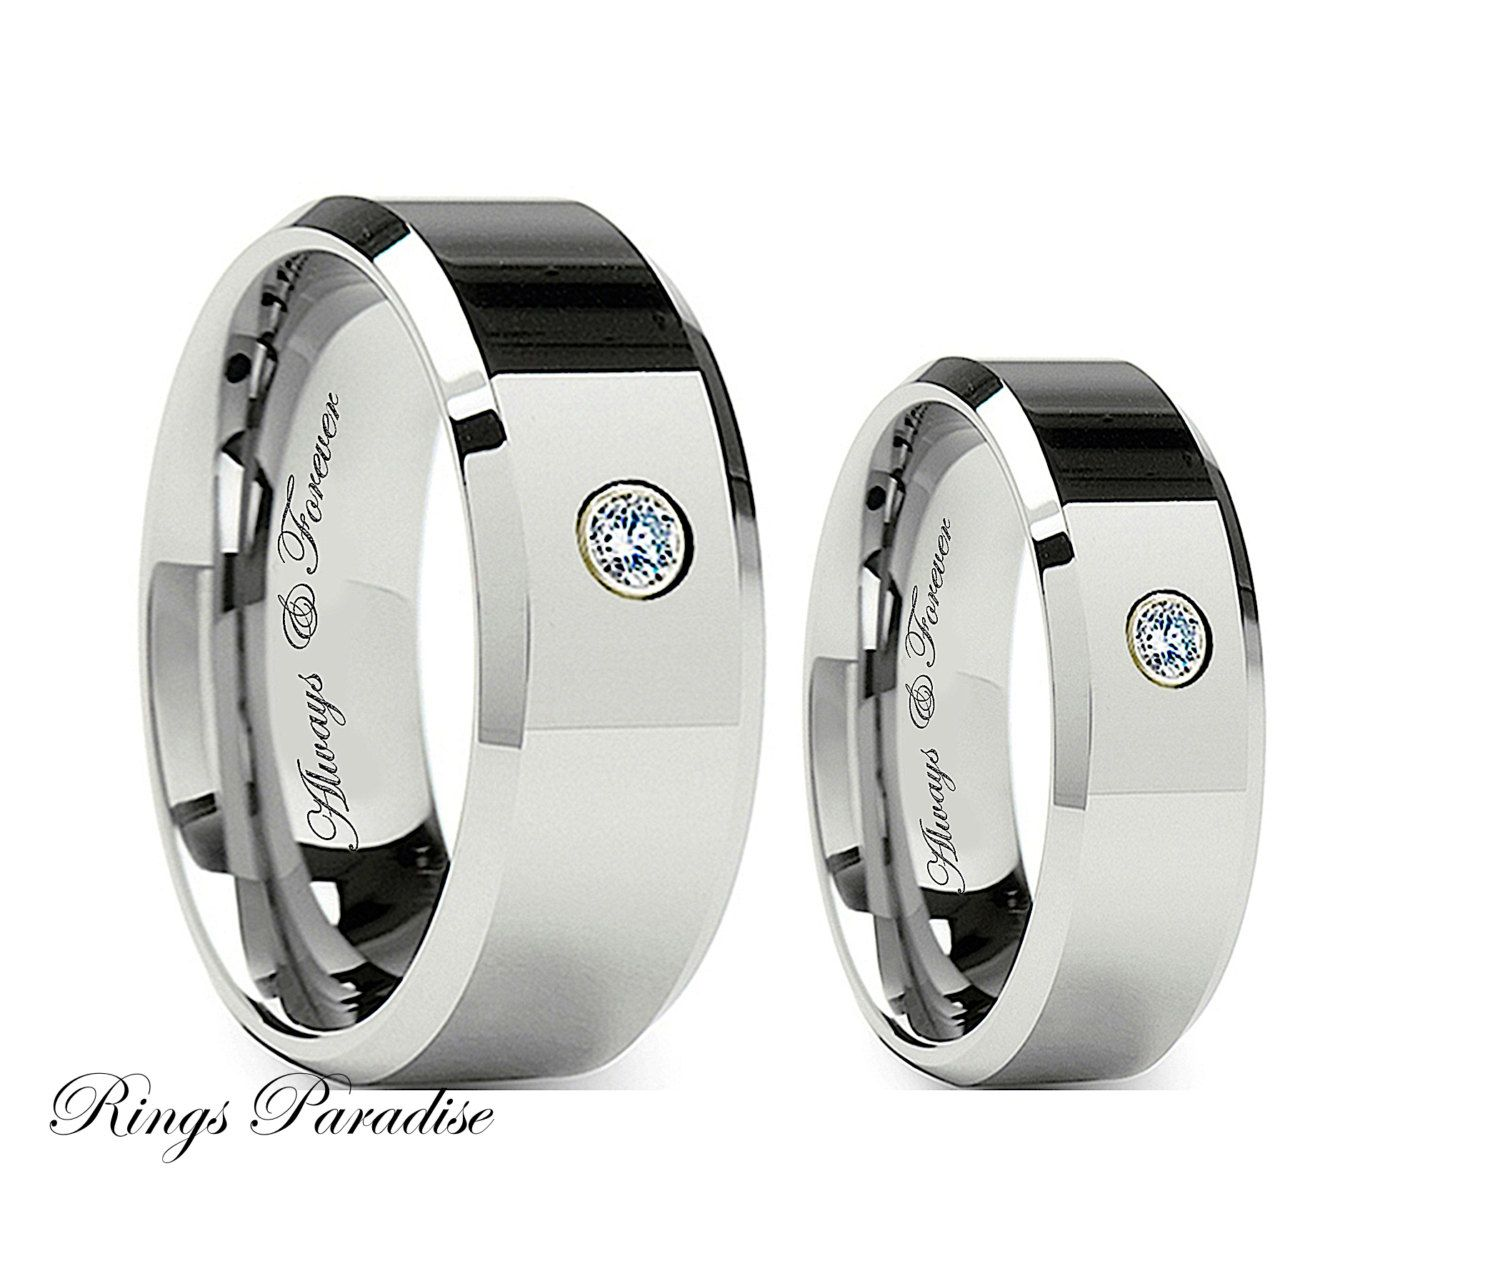 com bands band nature wood amazon ring will tungsten wedding dp comfort fit king finish high black polished carbide inlay